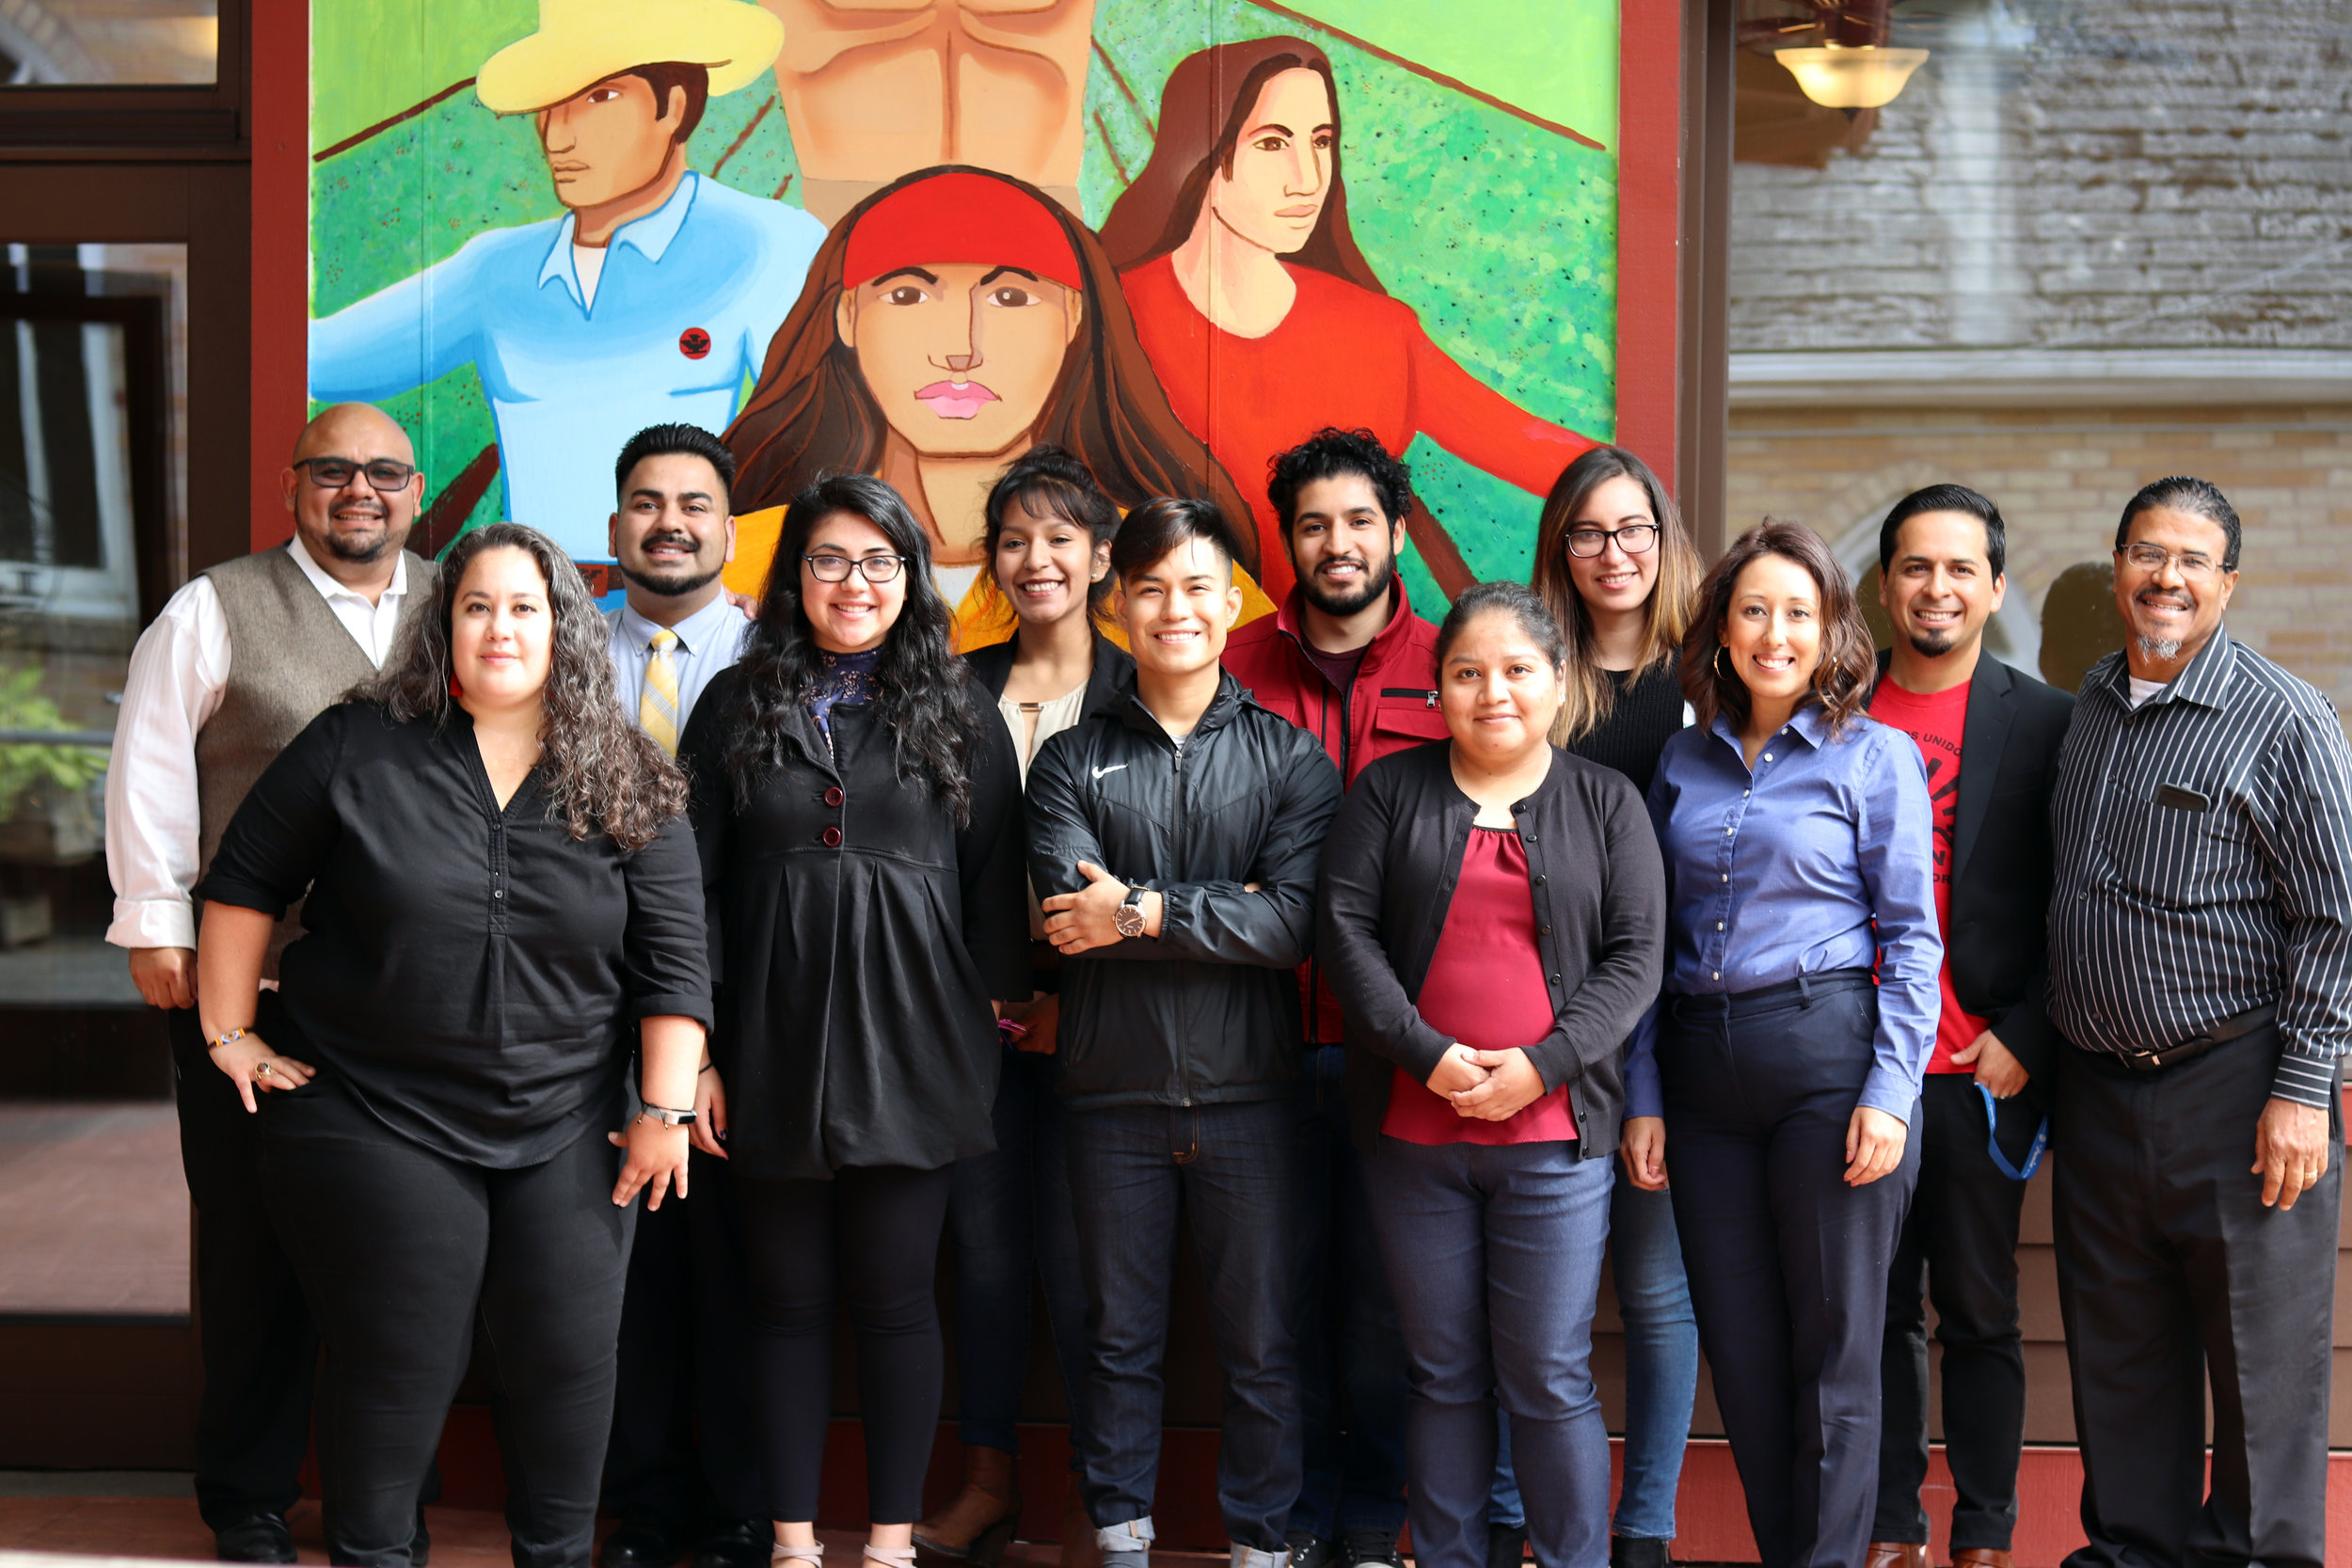 Graduates from People's Representatives' elected office cohort stand and smile in front of a large painting depicting farmworkers.